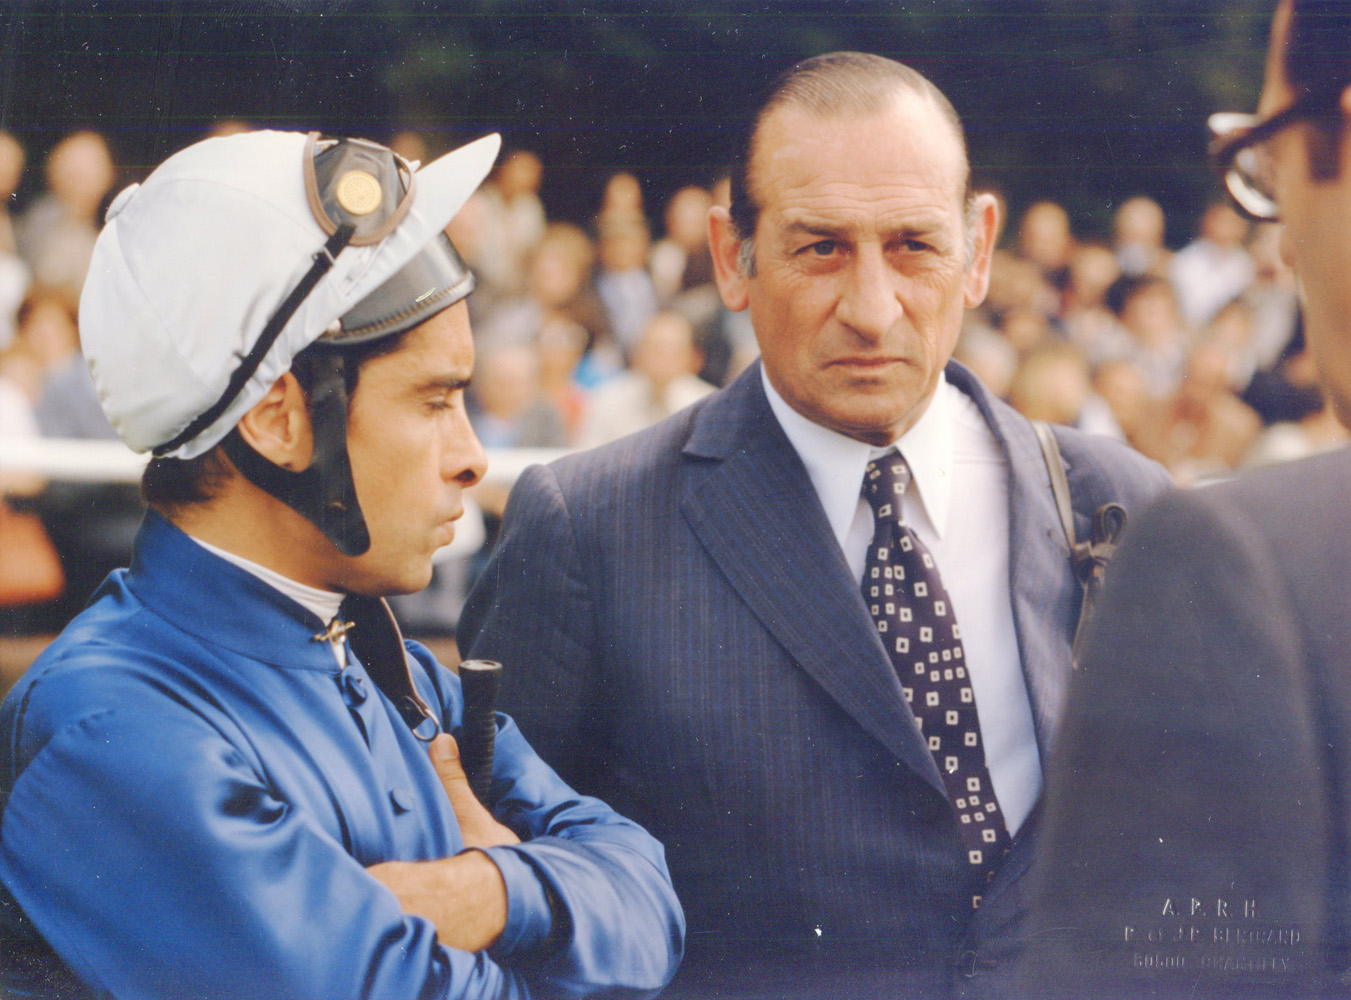 Jockey Yves Saint Martin and trainer Angel Penna, Sr. at Chantilly, December 1977 (A. P. R. H. Bertrand/Museum Collection)